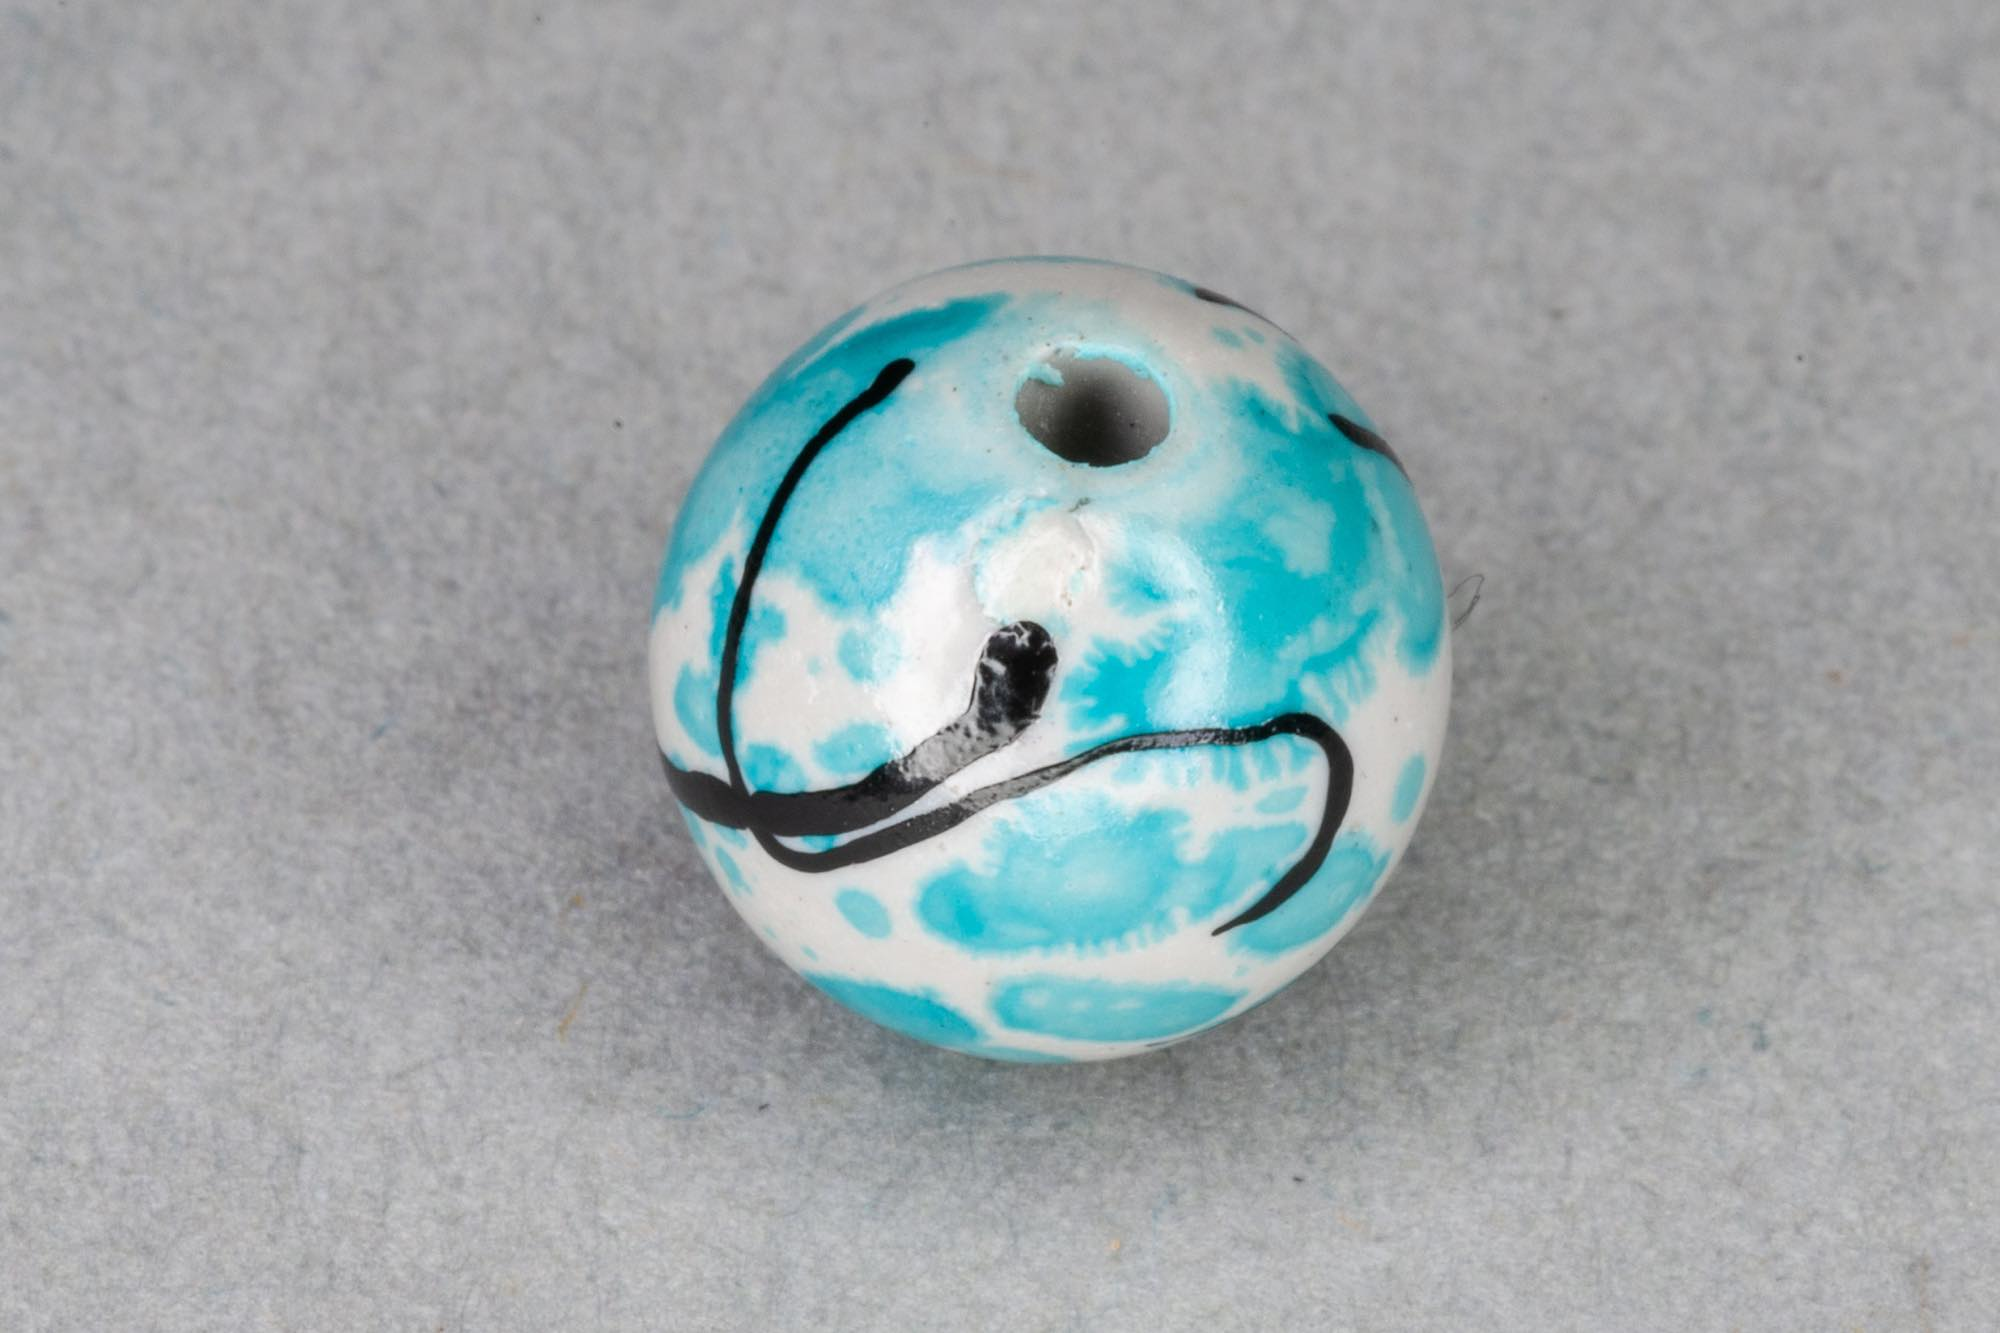 Round Acrylic 10mm Bead, Turquoise Paint Effect 1.2mm hole